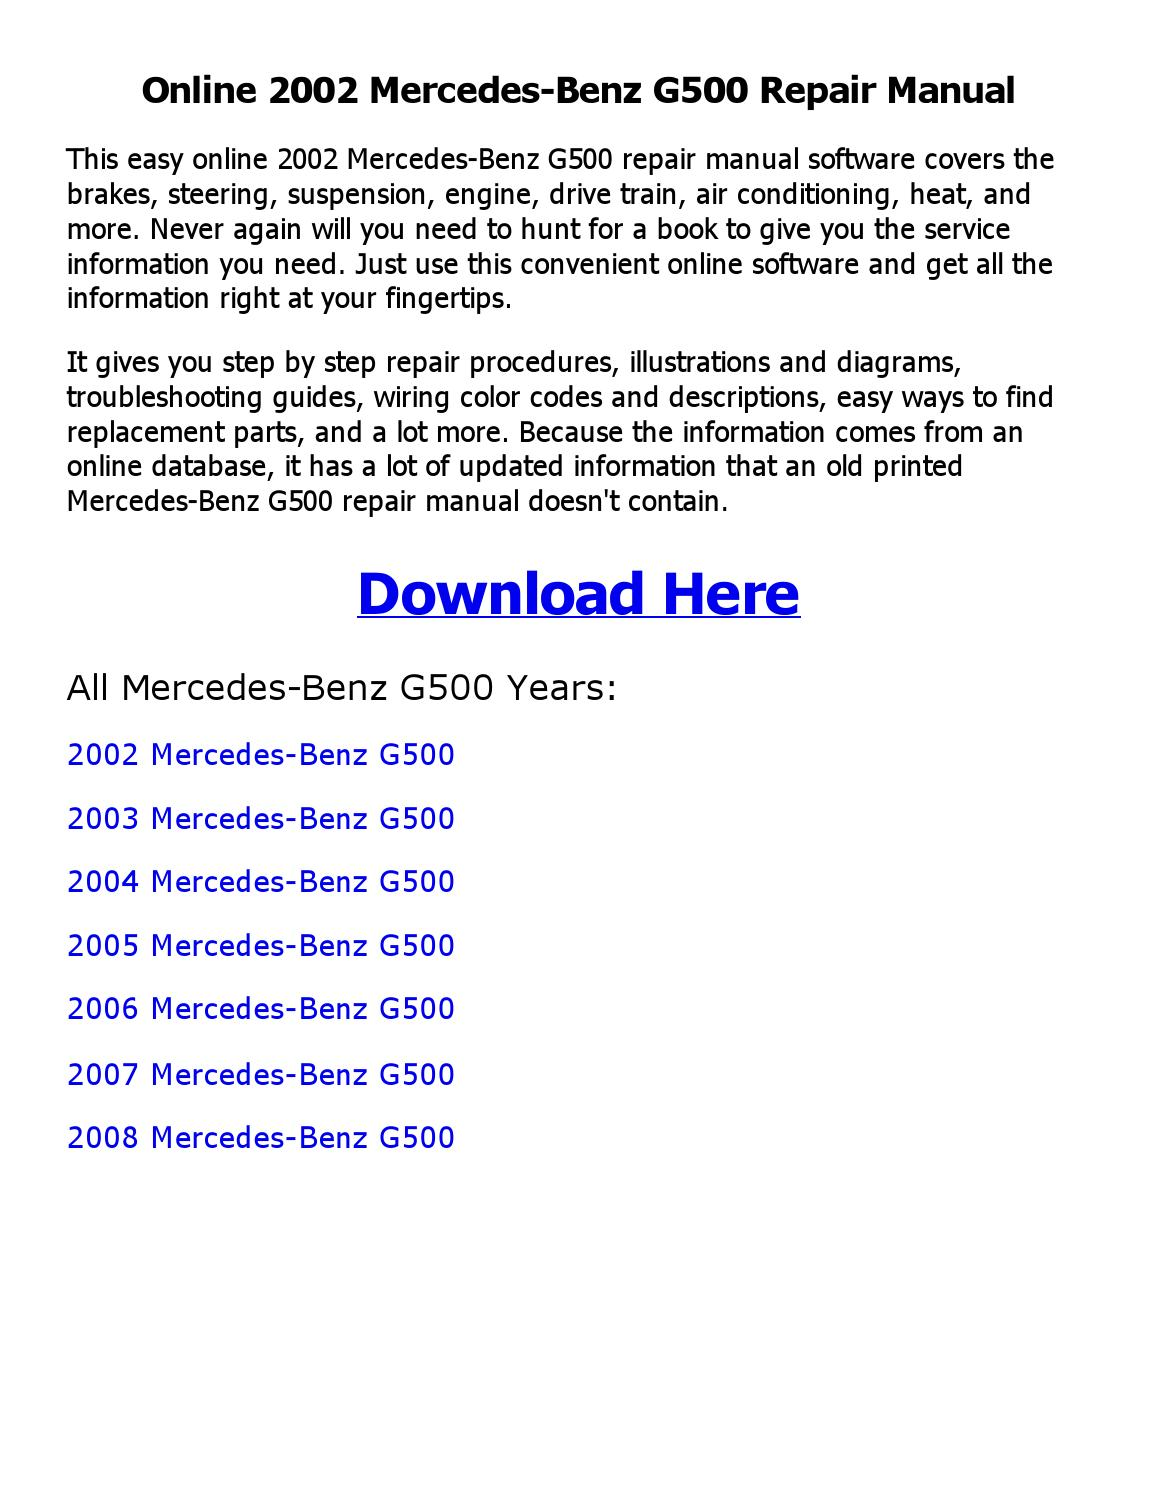 Mercedes G500 Wiring Diagram Complete Diagrams Free Download W124 2002 Benz Repair Manual Online By Johnny Issuu Rh Com